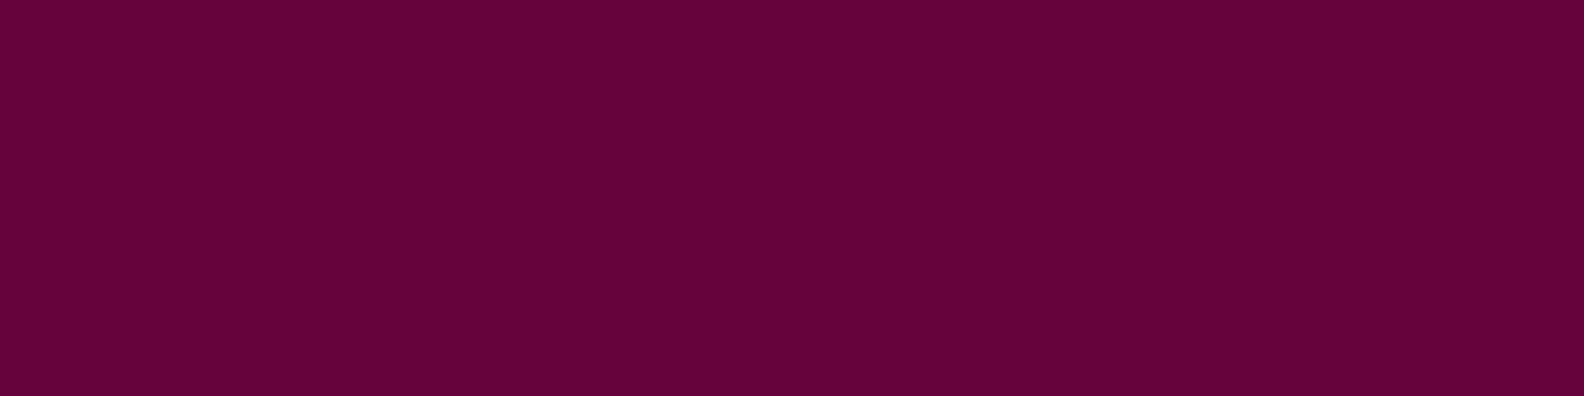 1584x396 Imperial Purple Solid Color Background